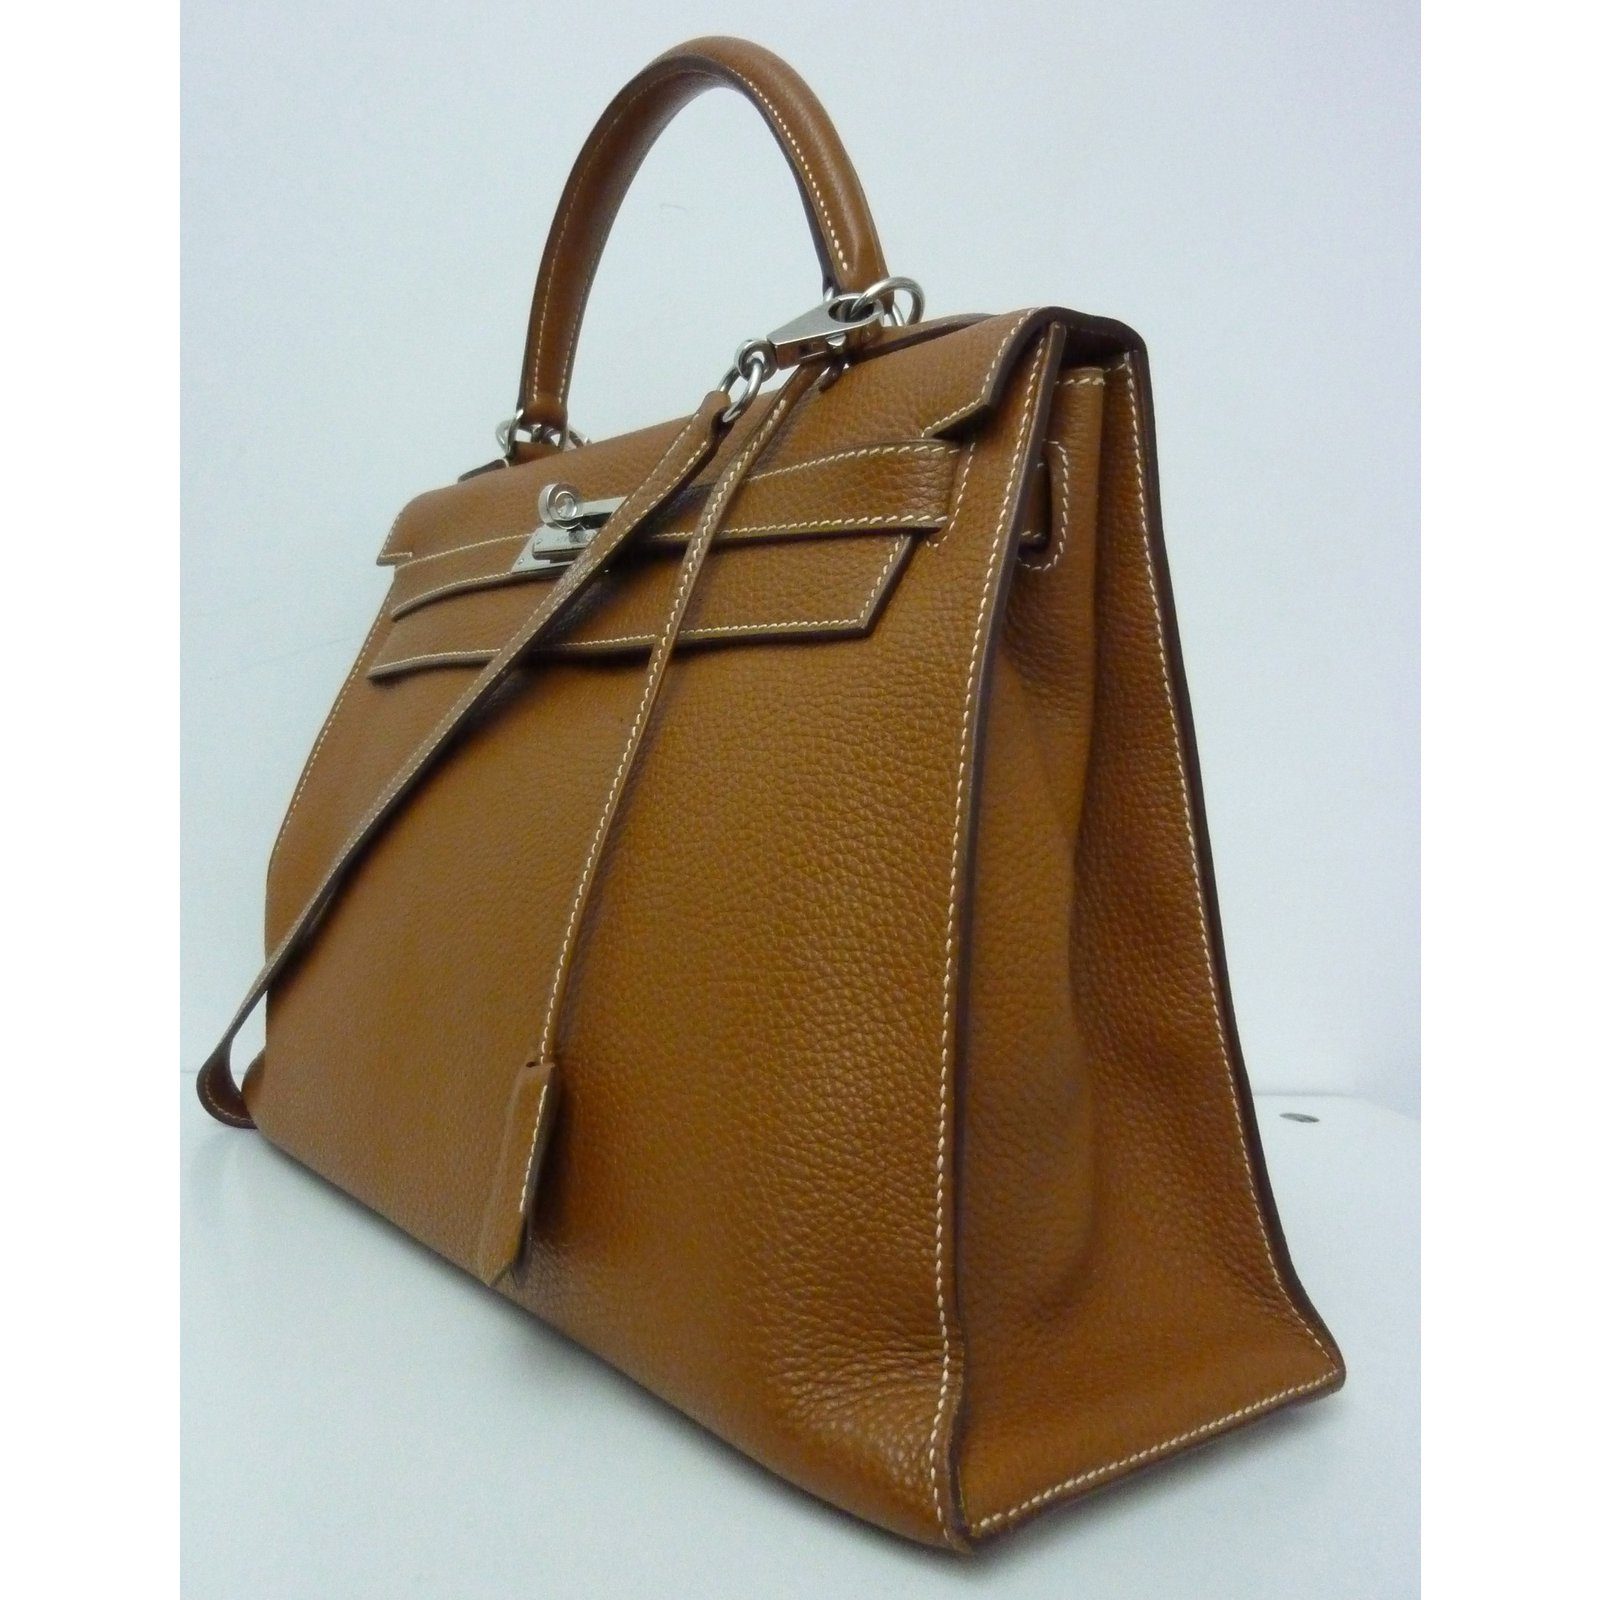 309c3f9a288d Hermès Kelly 32 sellier togo Handbags Leather Caramel ref.53290 - Joli  Closet